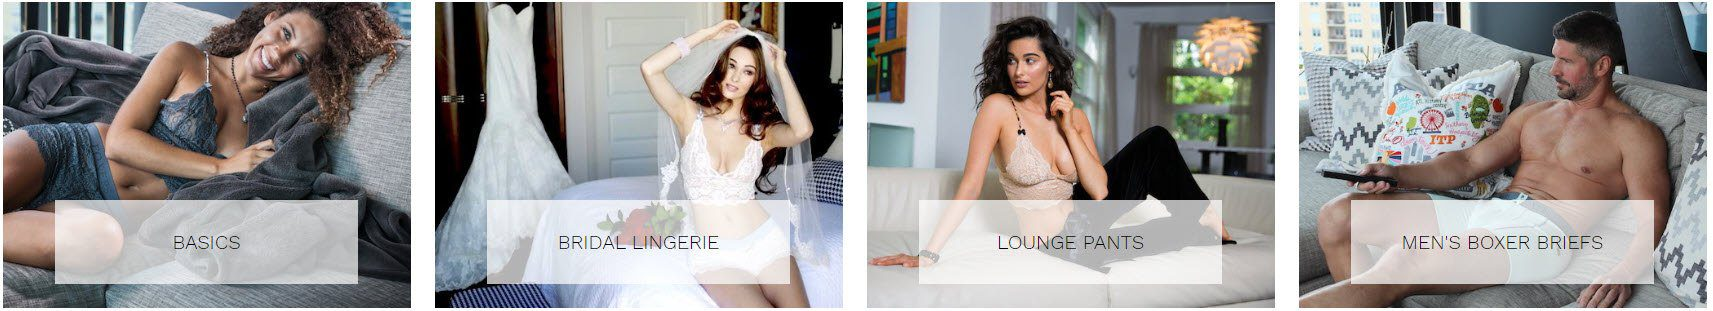 Lingerie Affiliate Programs - Foxers stripe